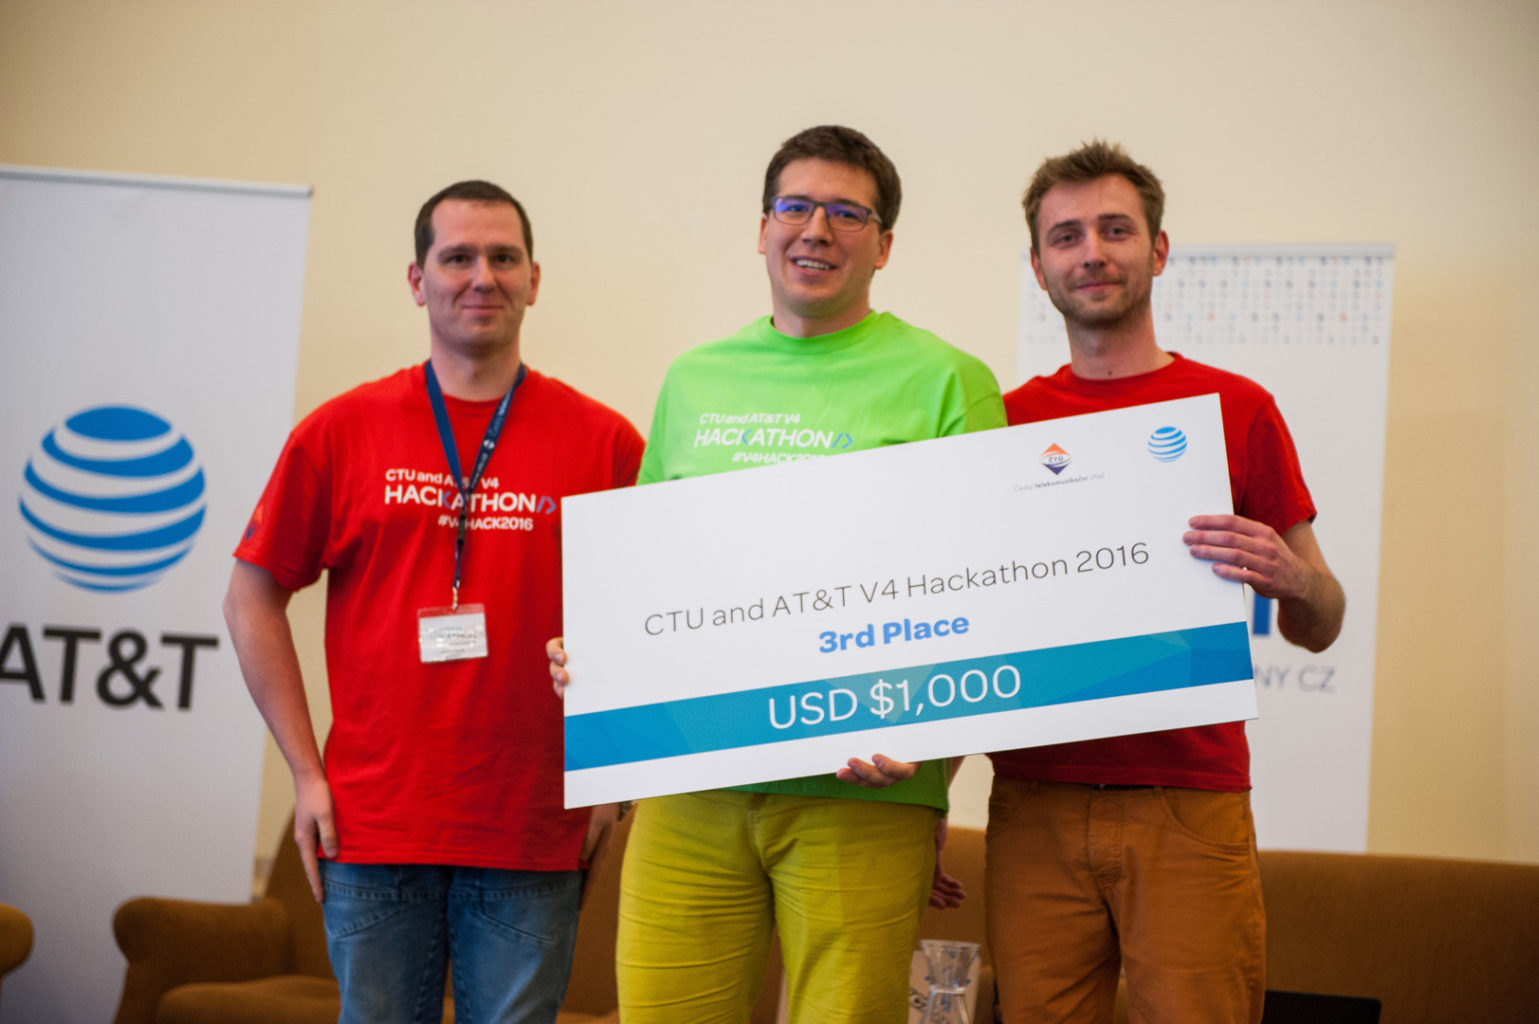 V4 Hackathon Prague 2016 winners 3rd place